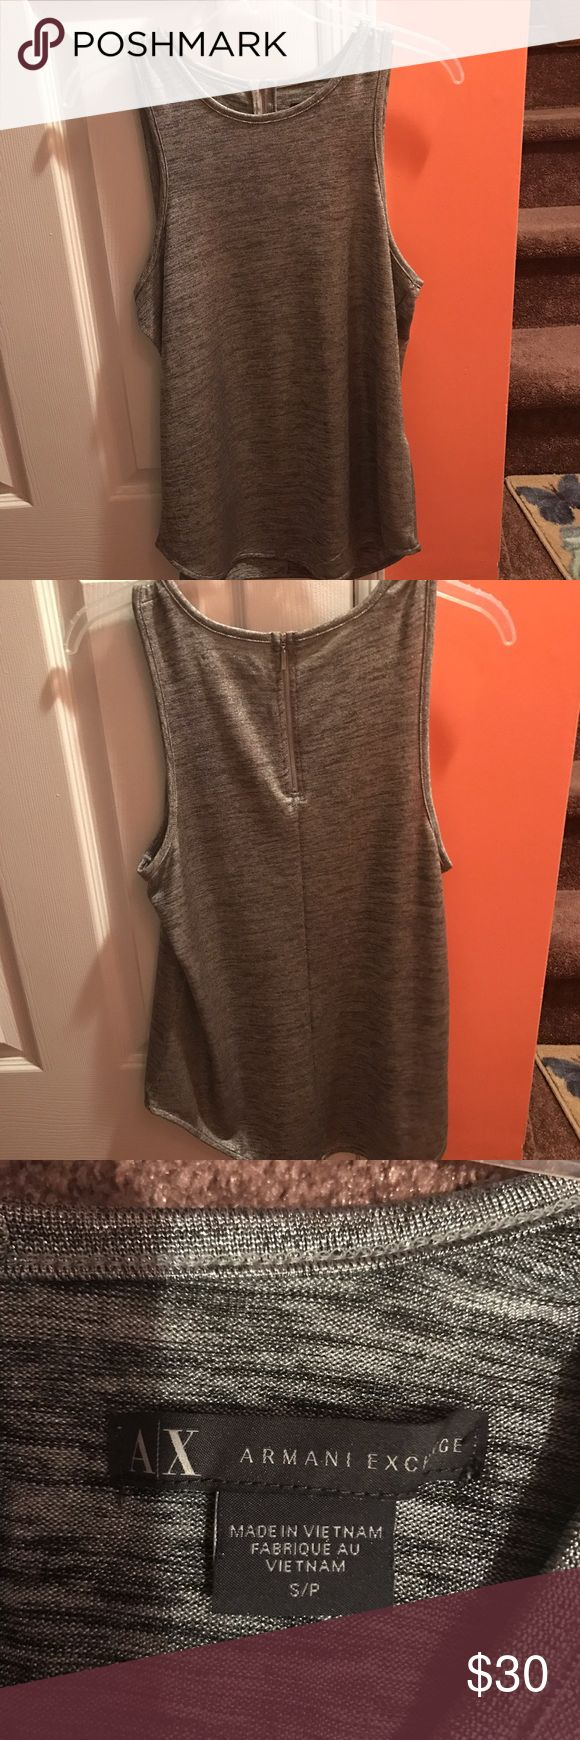 Armani exchange tank top Great condition! Worn once! Armani tank top. Flowy fitted.. the color is grey/silverfish with a metallic shimmer! No trades.. any questions please ask! A/X Armani Exchange Tops Tank Tops